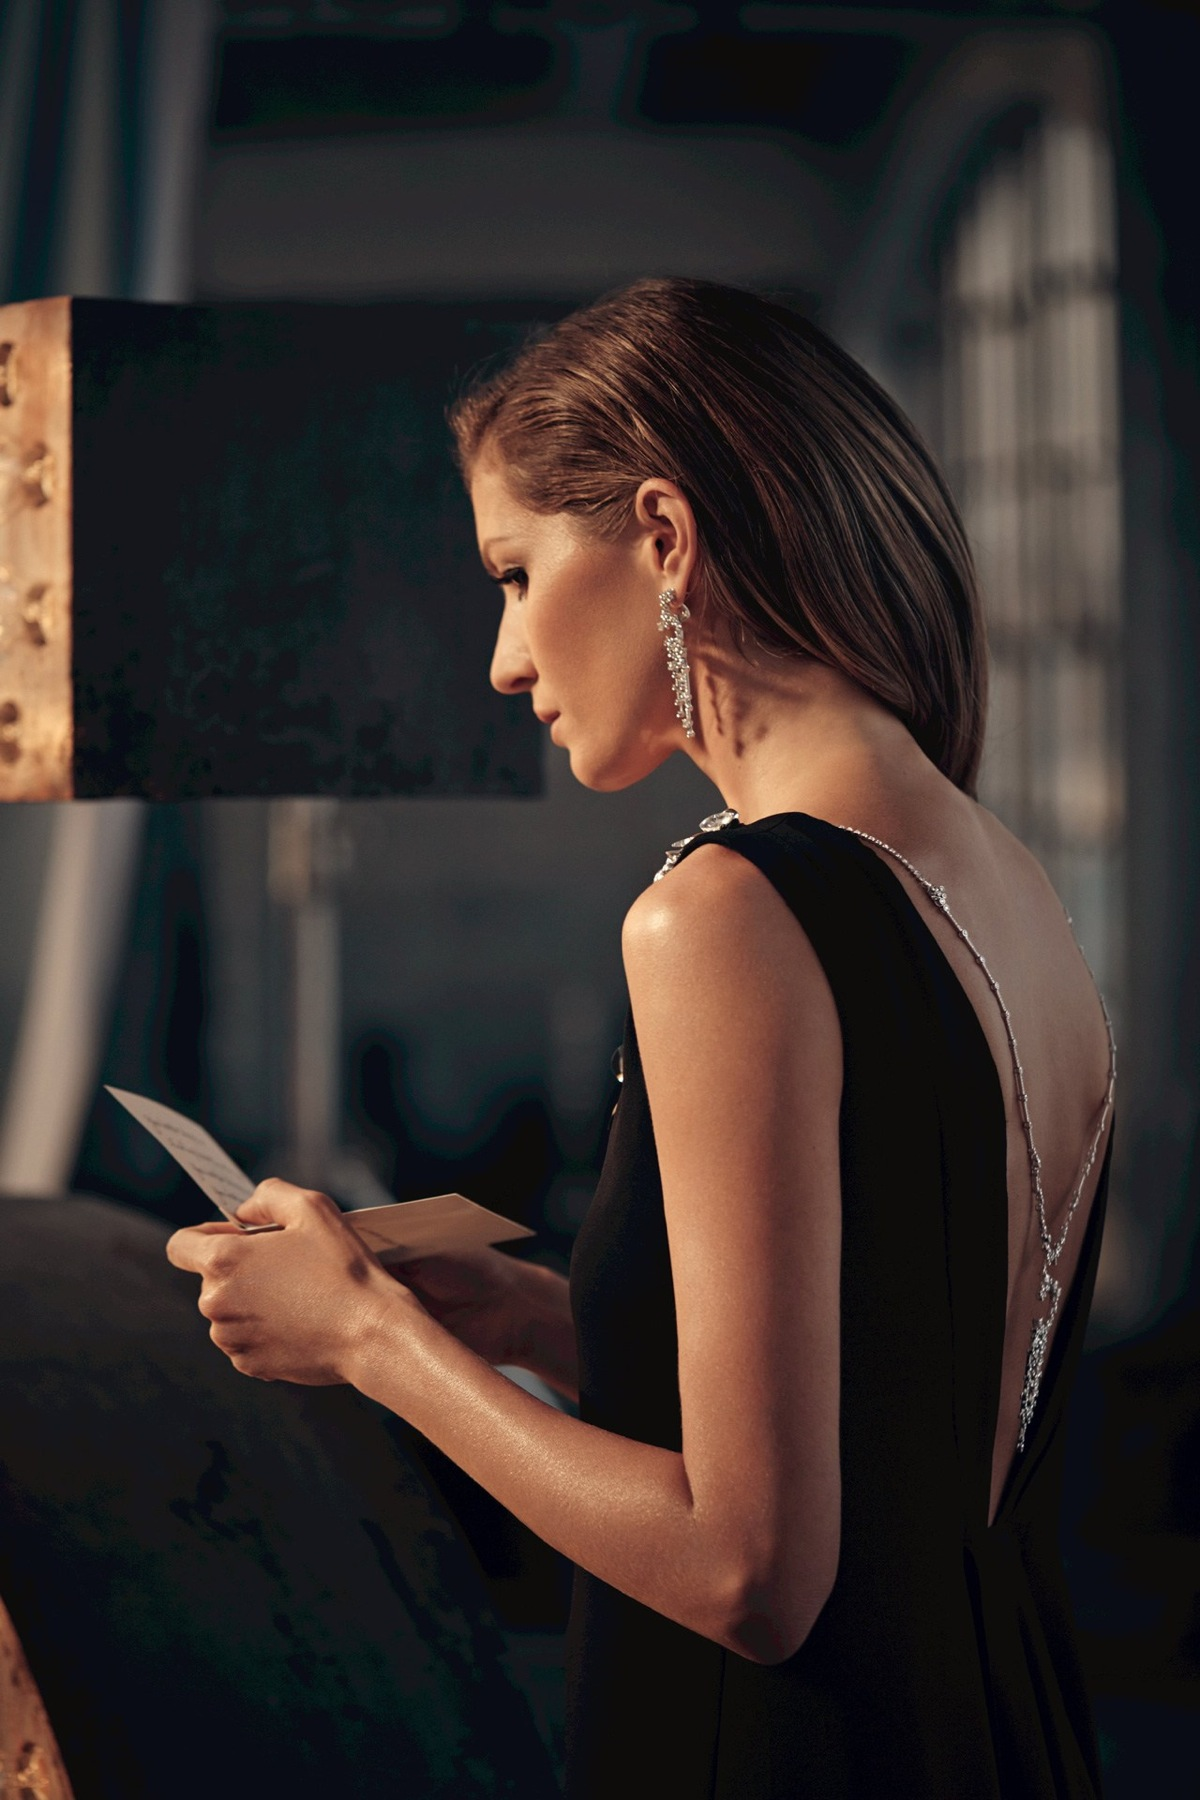 Chanel N 5 Film Featuring Gisele Bundchen 12